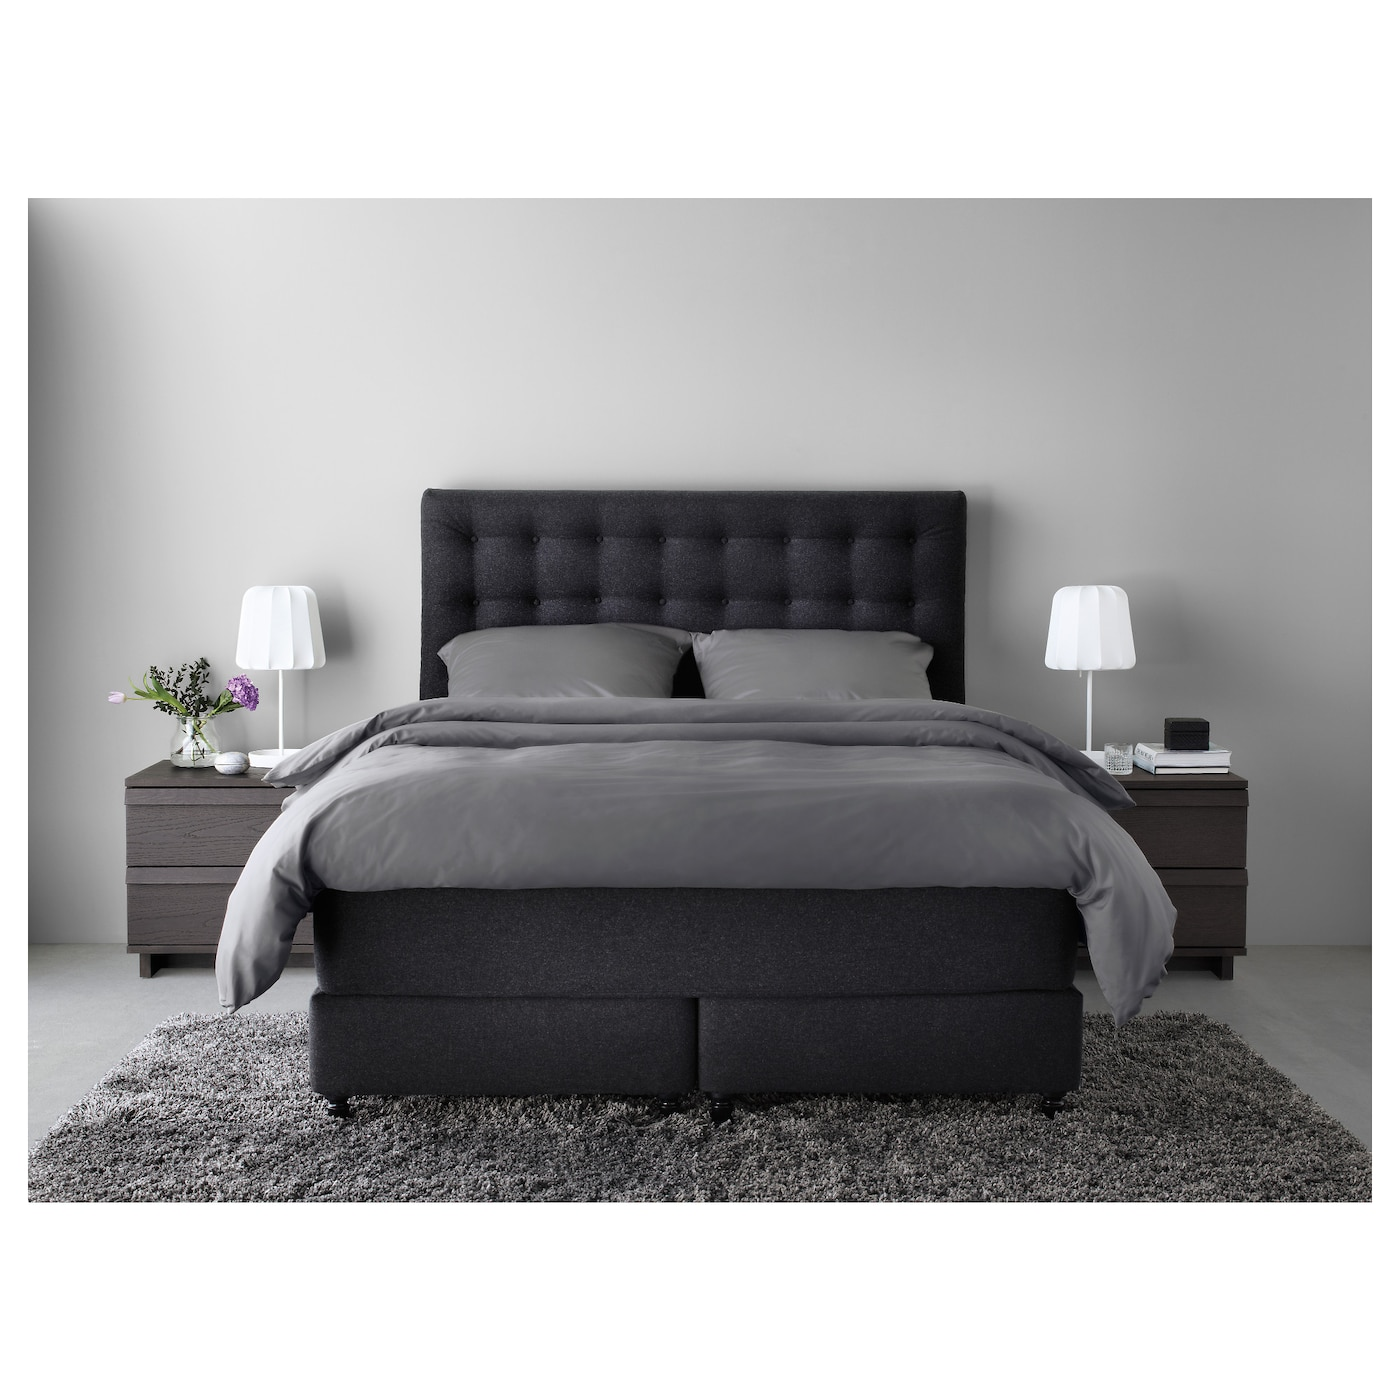 vallavik lit sommier hyllestad ferme tuss y gris 180x200 cm ikea. Black Bedroom Furniture Sets. Home Design Ideas